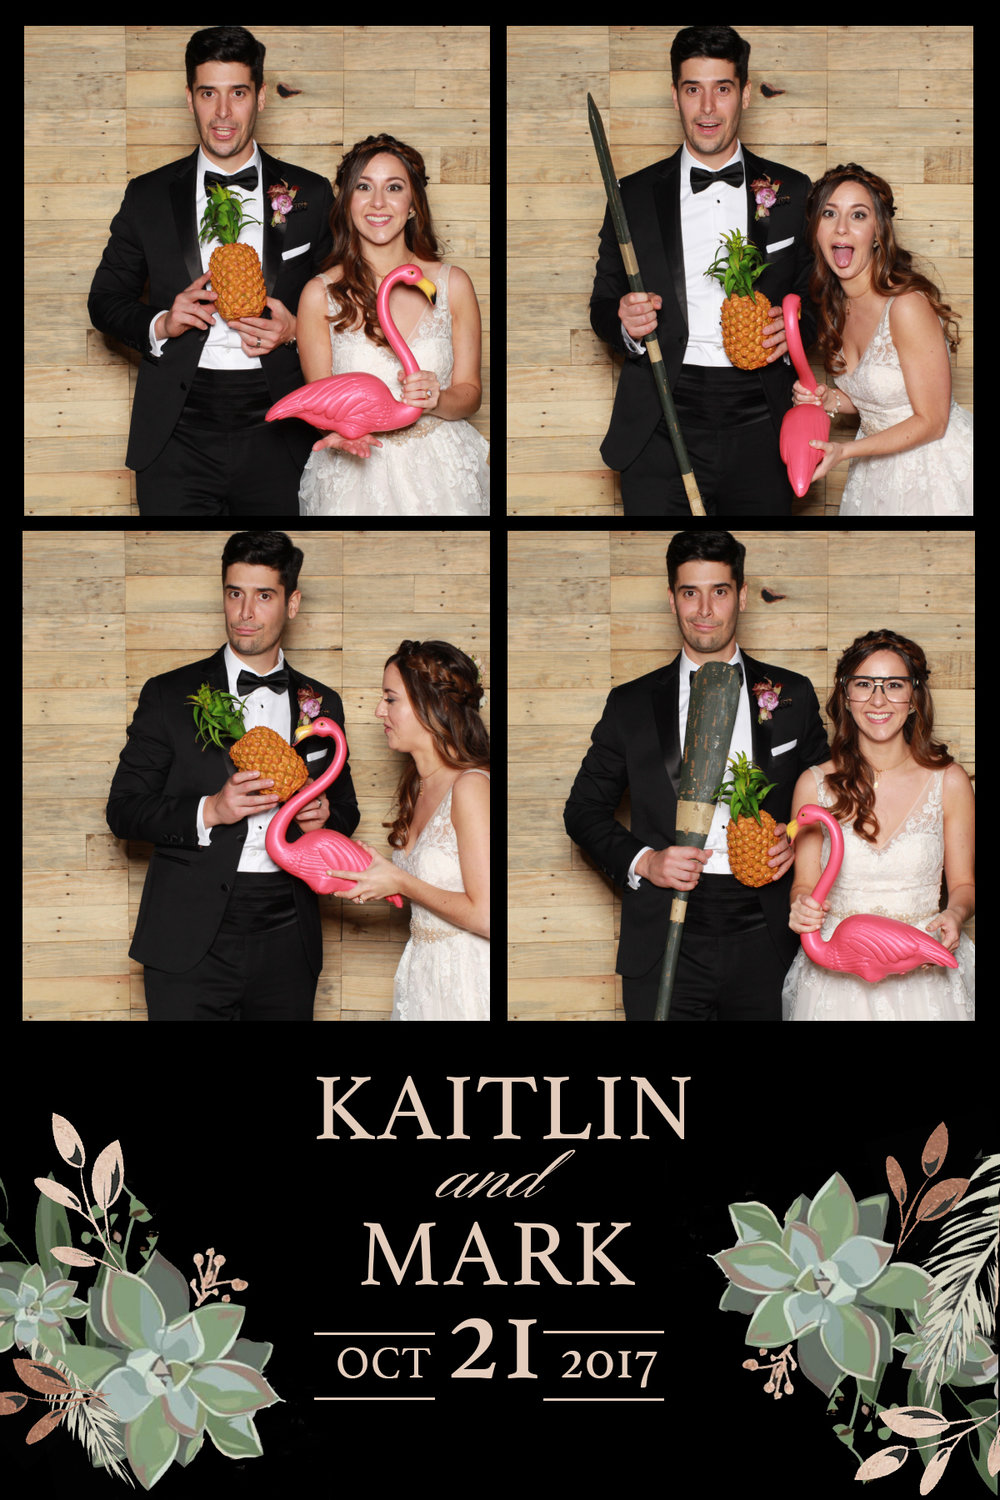 Kaitlin and Mark 10.21.17